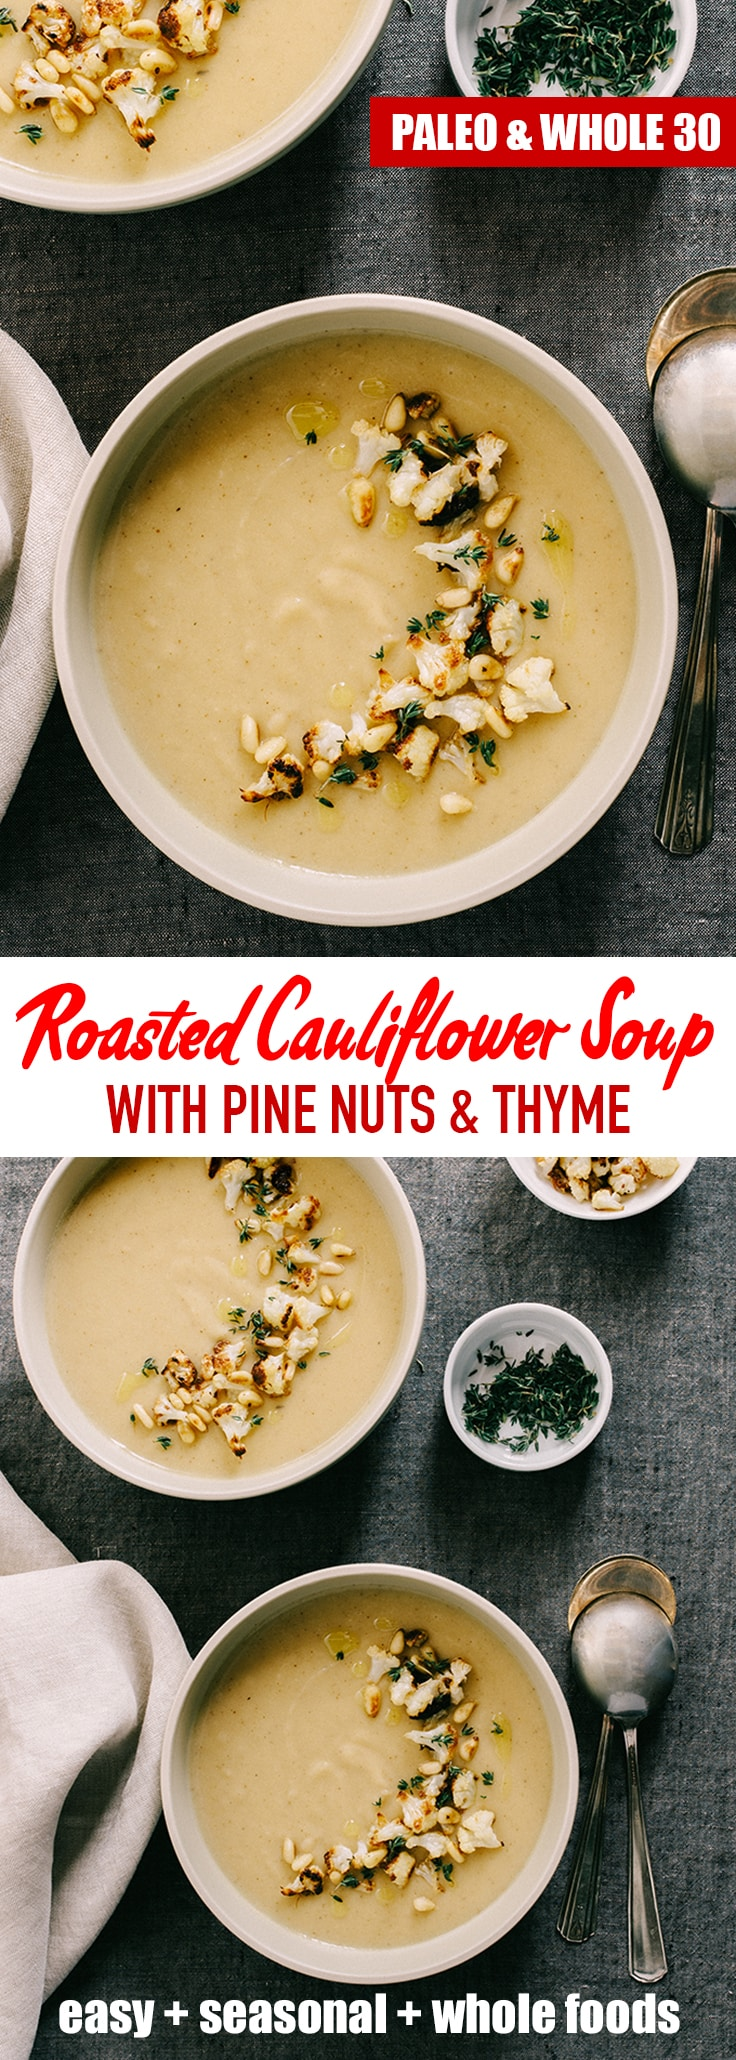 This roasted garlic and cauliflower soup is nutty and slightly sweet, with hints of bright flavor from the thyme and olive oil. Naturally grain-free and gluten-free, it's also friendly for vegetarian, paleo, and whole 30 diets. This soup freezes well for an fast and easy weeknight meal or lunch. #cauliflower #soup #paleo #whole30